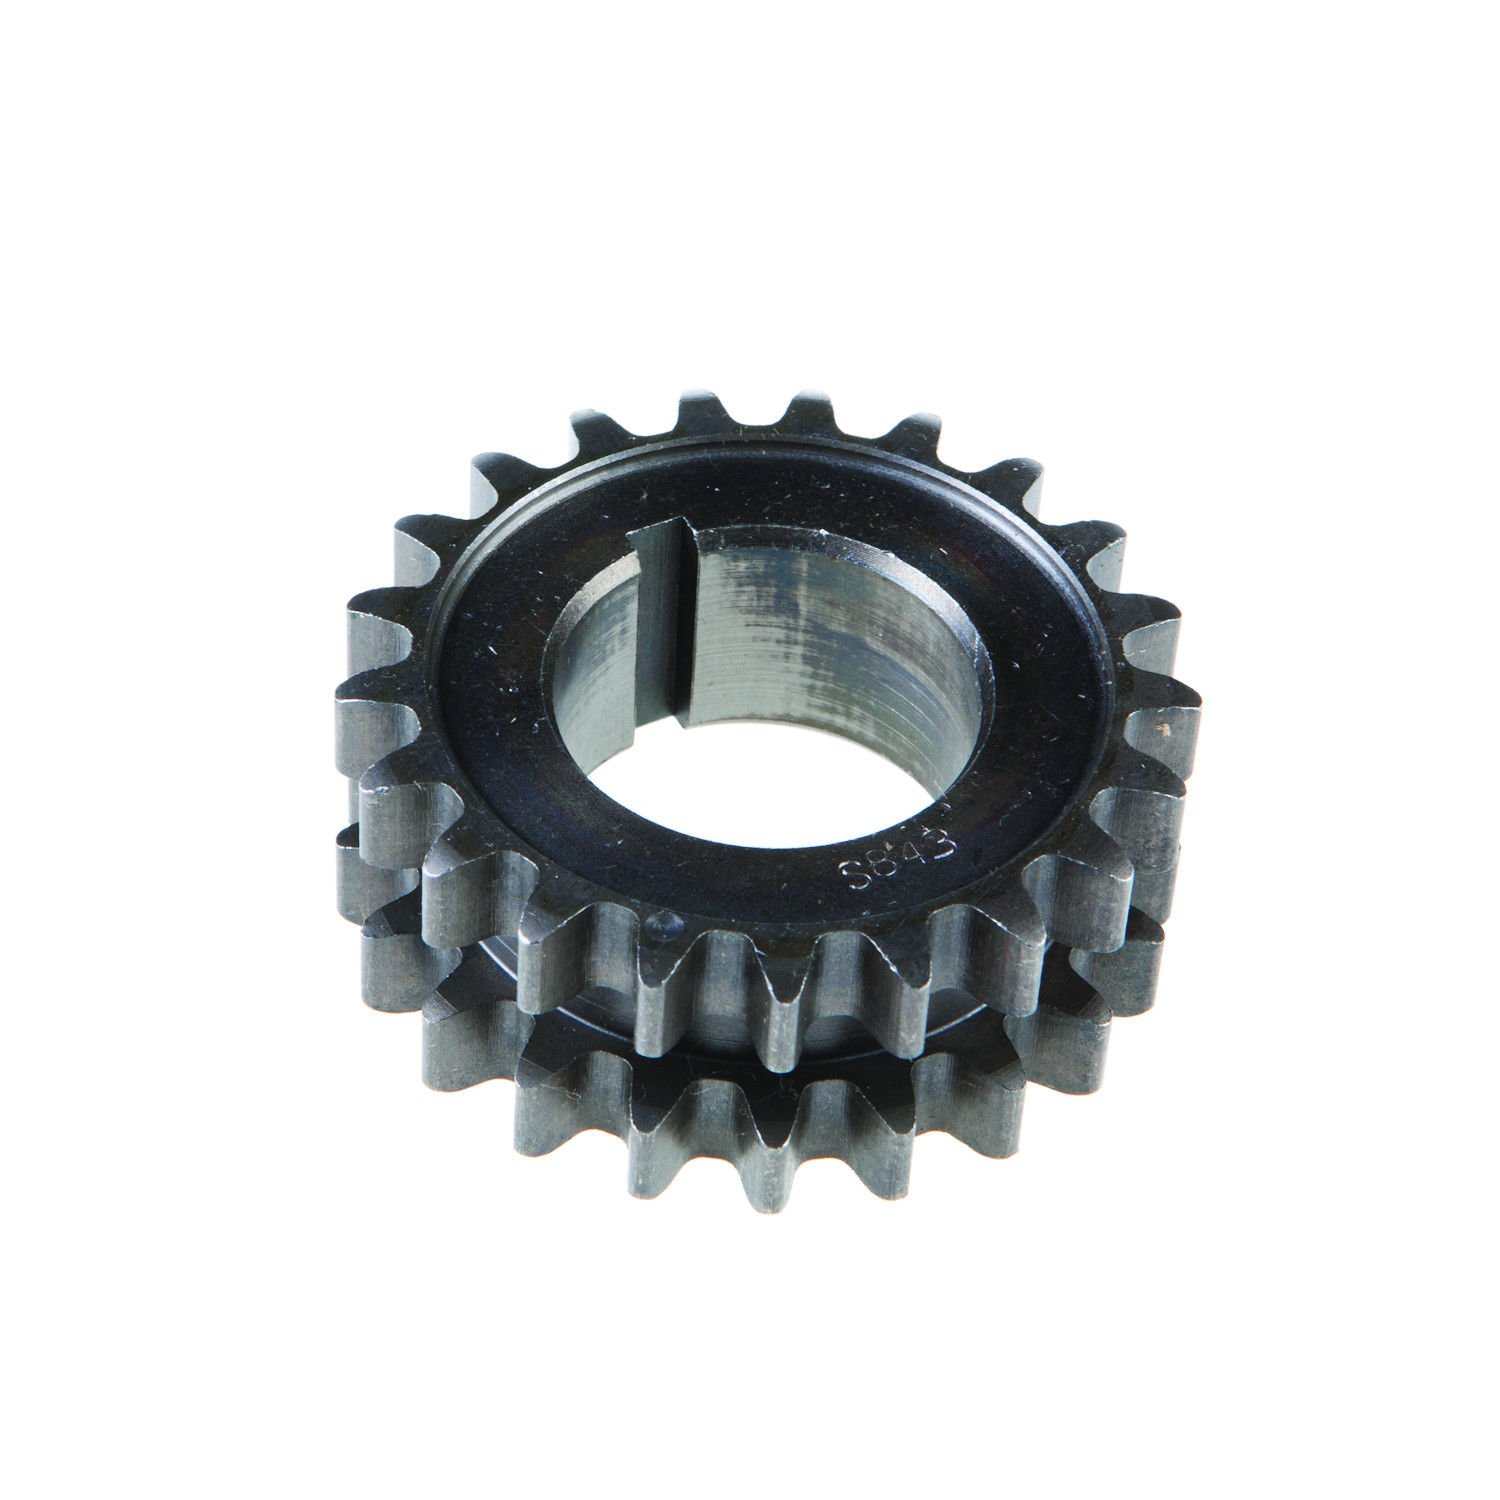 Melling S843 Timing Chain Sprocket